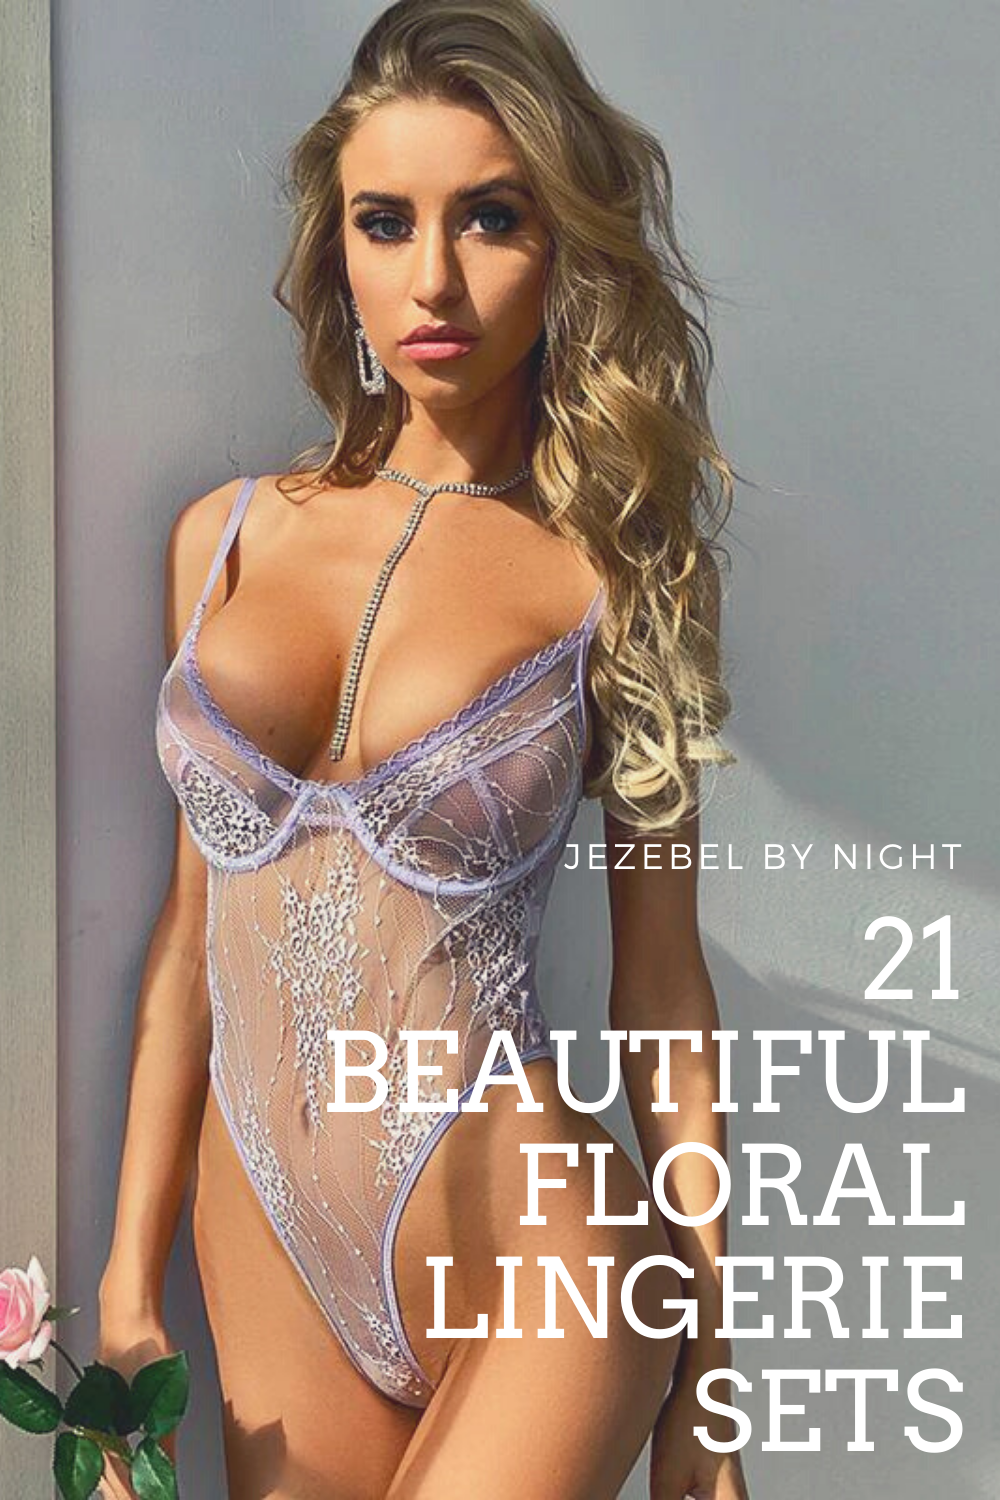 Floral Lingerie - Jezebel by Night Spring Picks. We've rounded up our best spring picks from the entire store to have you looking (and feeling) like a midsummer night's dream this spring. We have floral pyjamas, floral lace teddies, floral lingerie sets and lots of delicate lace and pastel colours to ensure you look as pretty as a picture this spring. #lingerie #summer #florallingerie #summerfashion